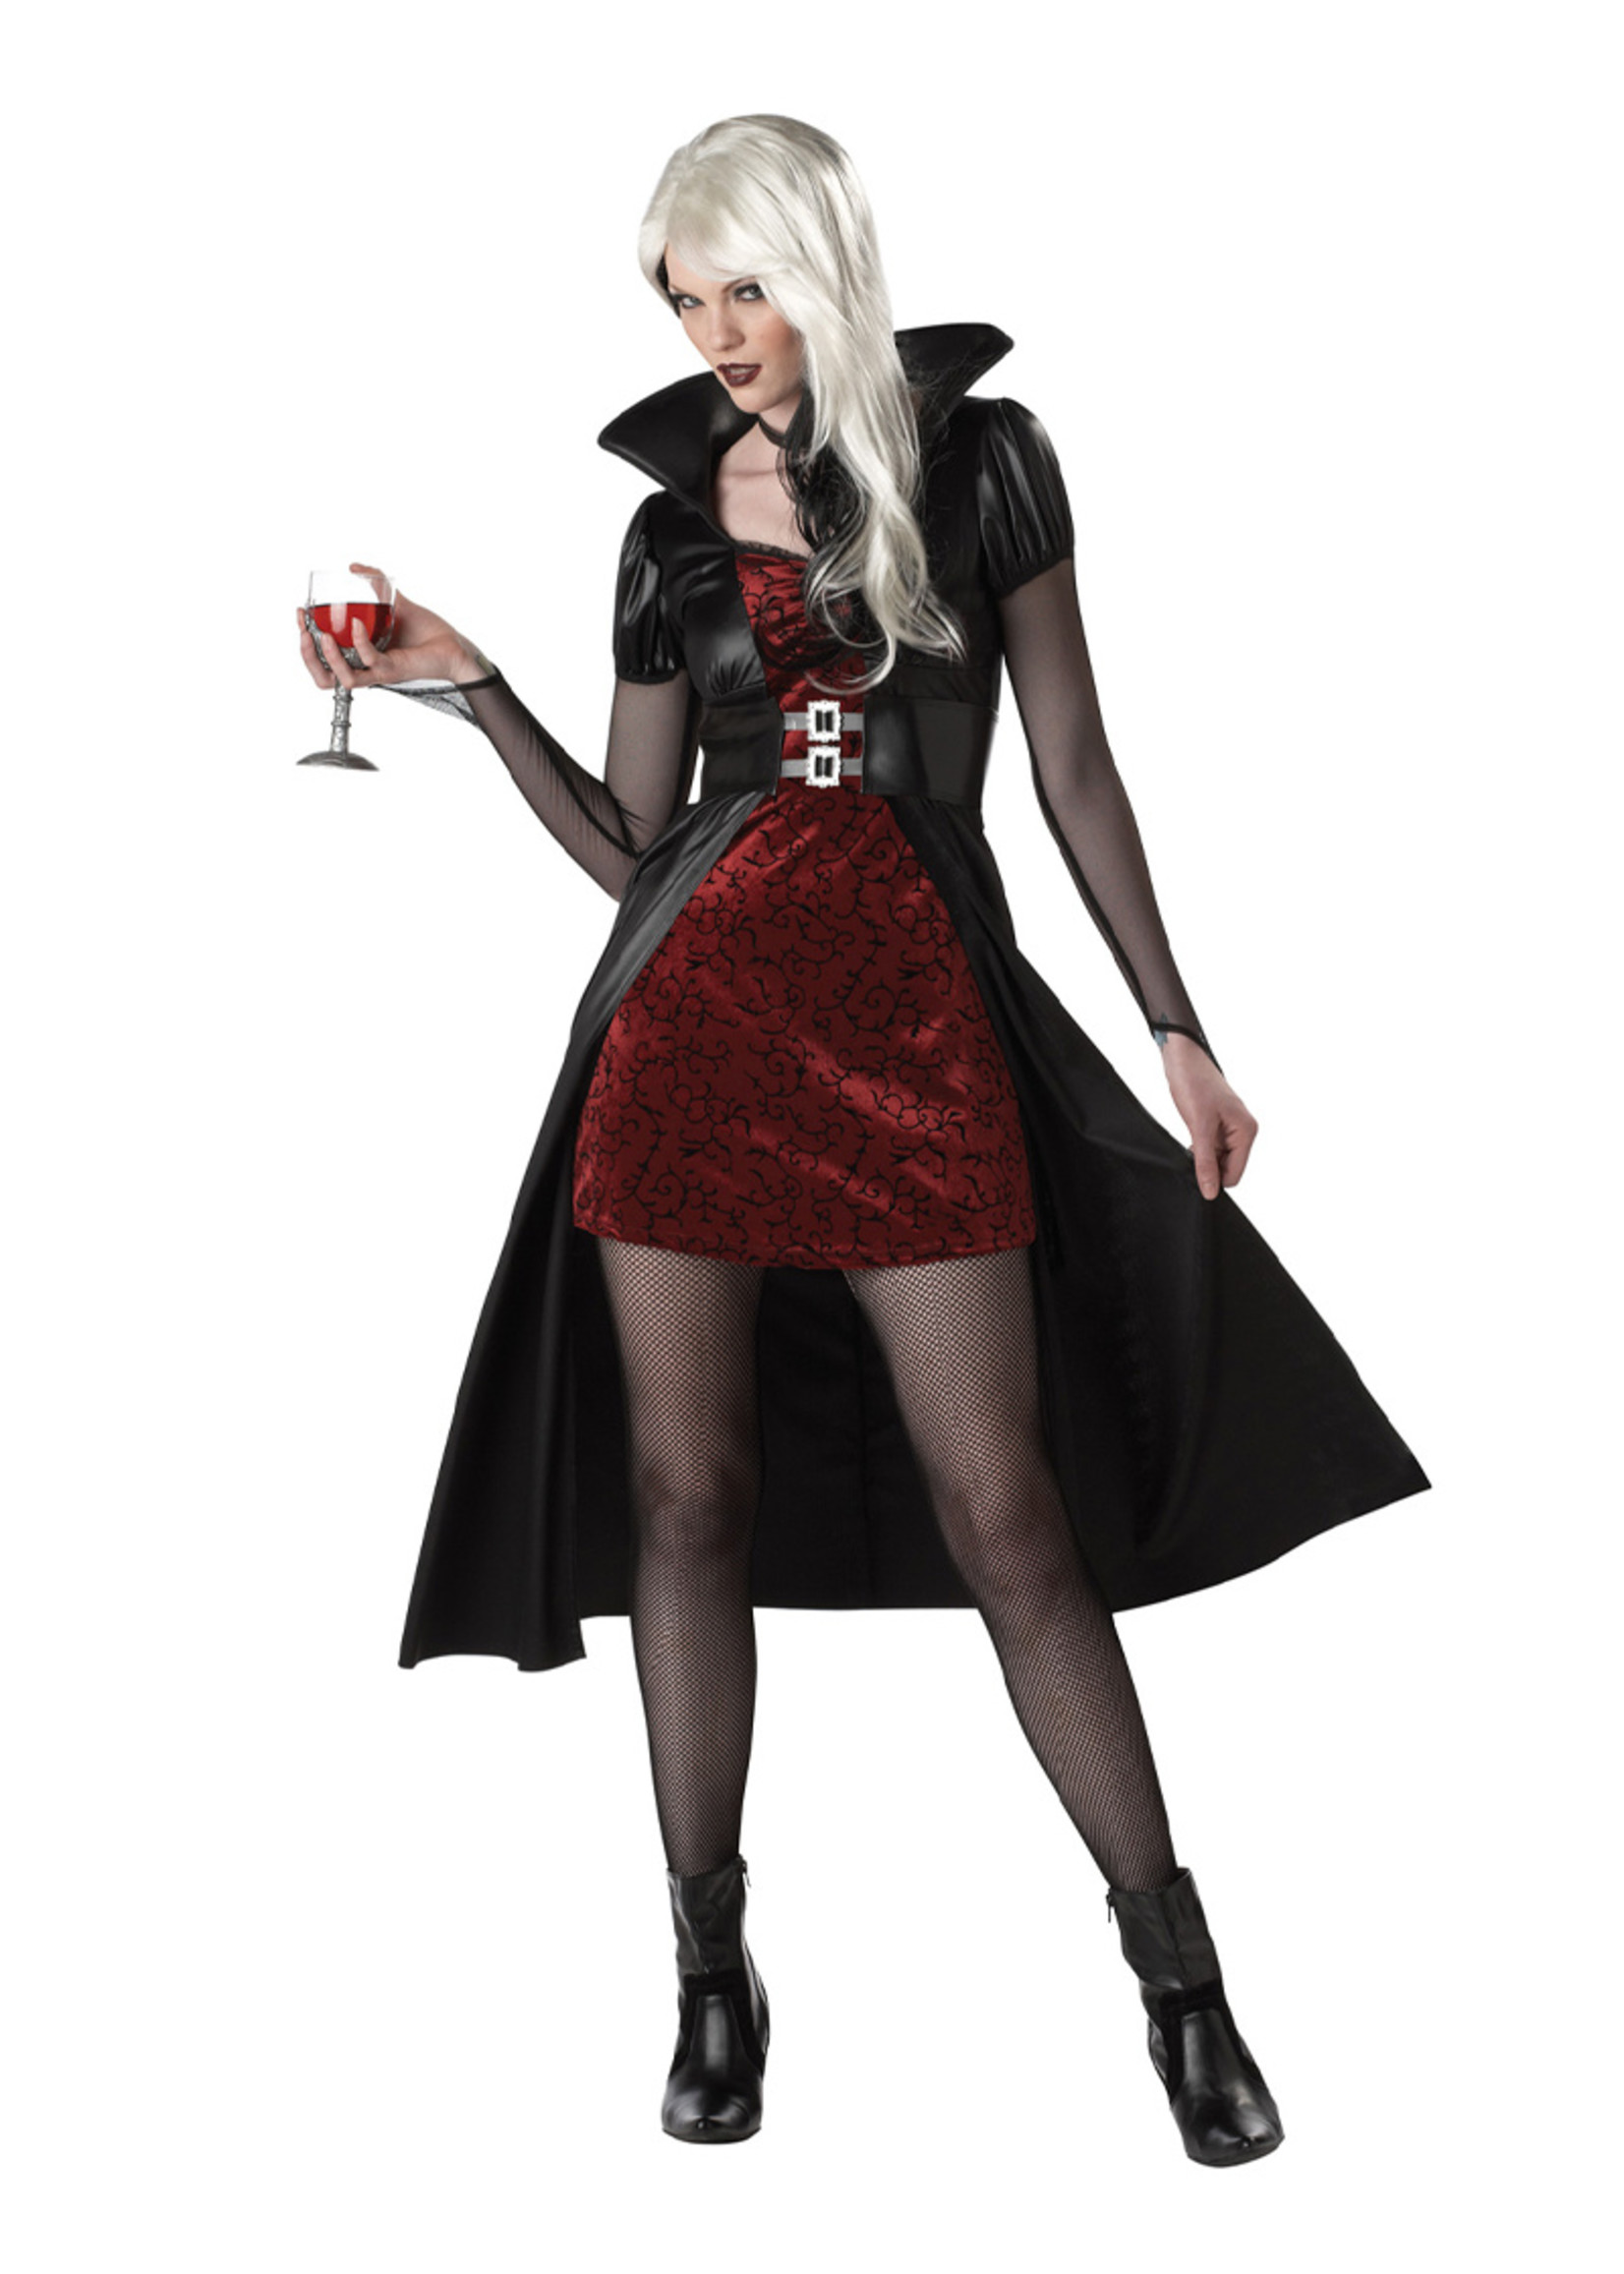 Blood Thirsty Costume - Women's